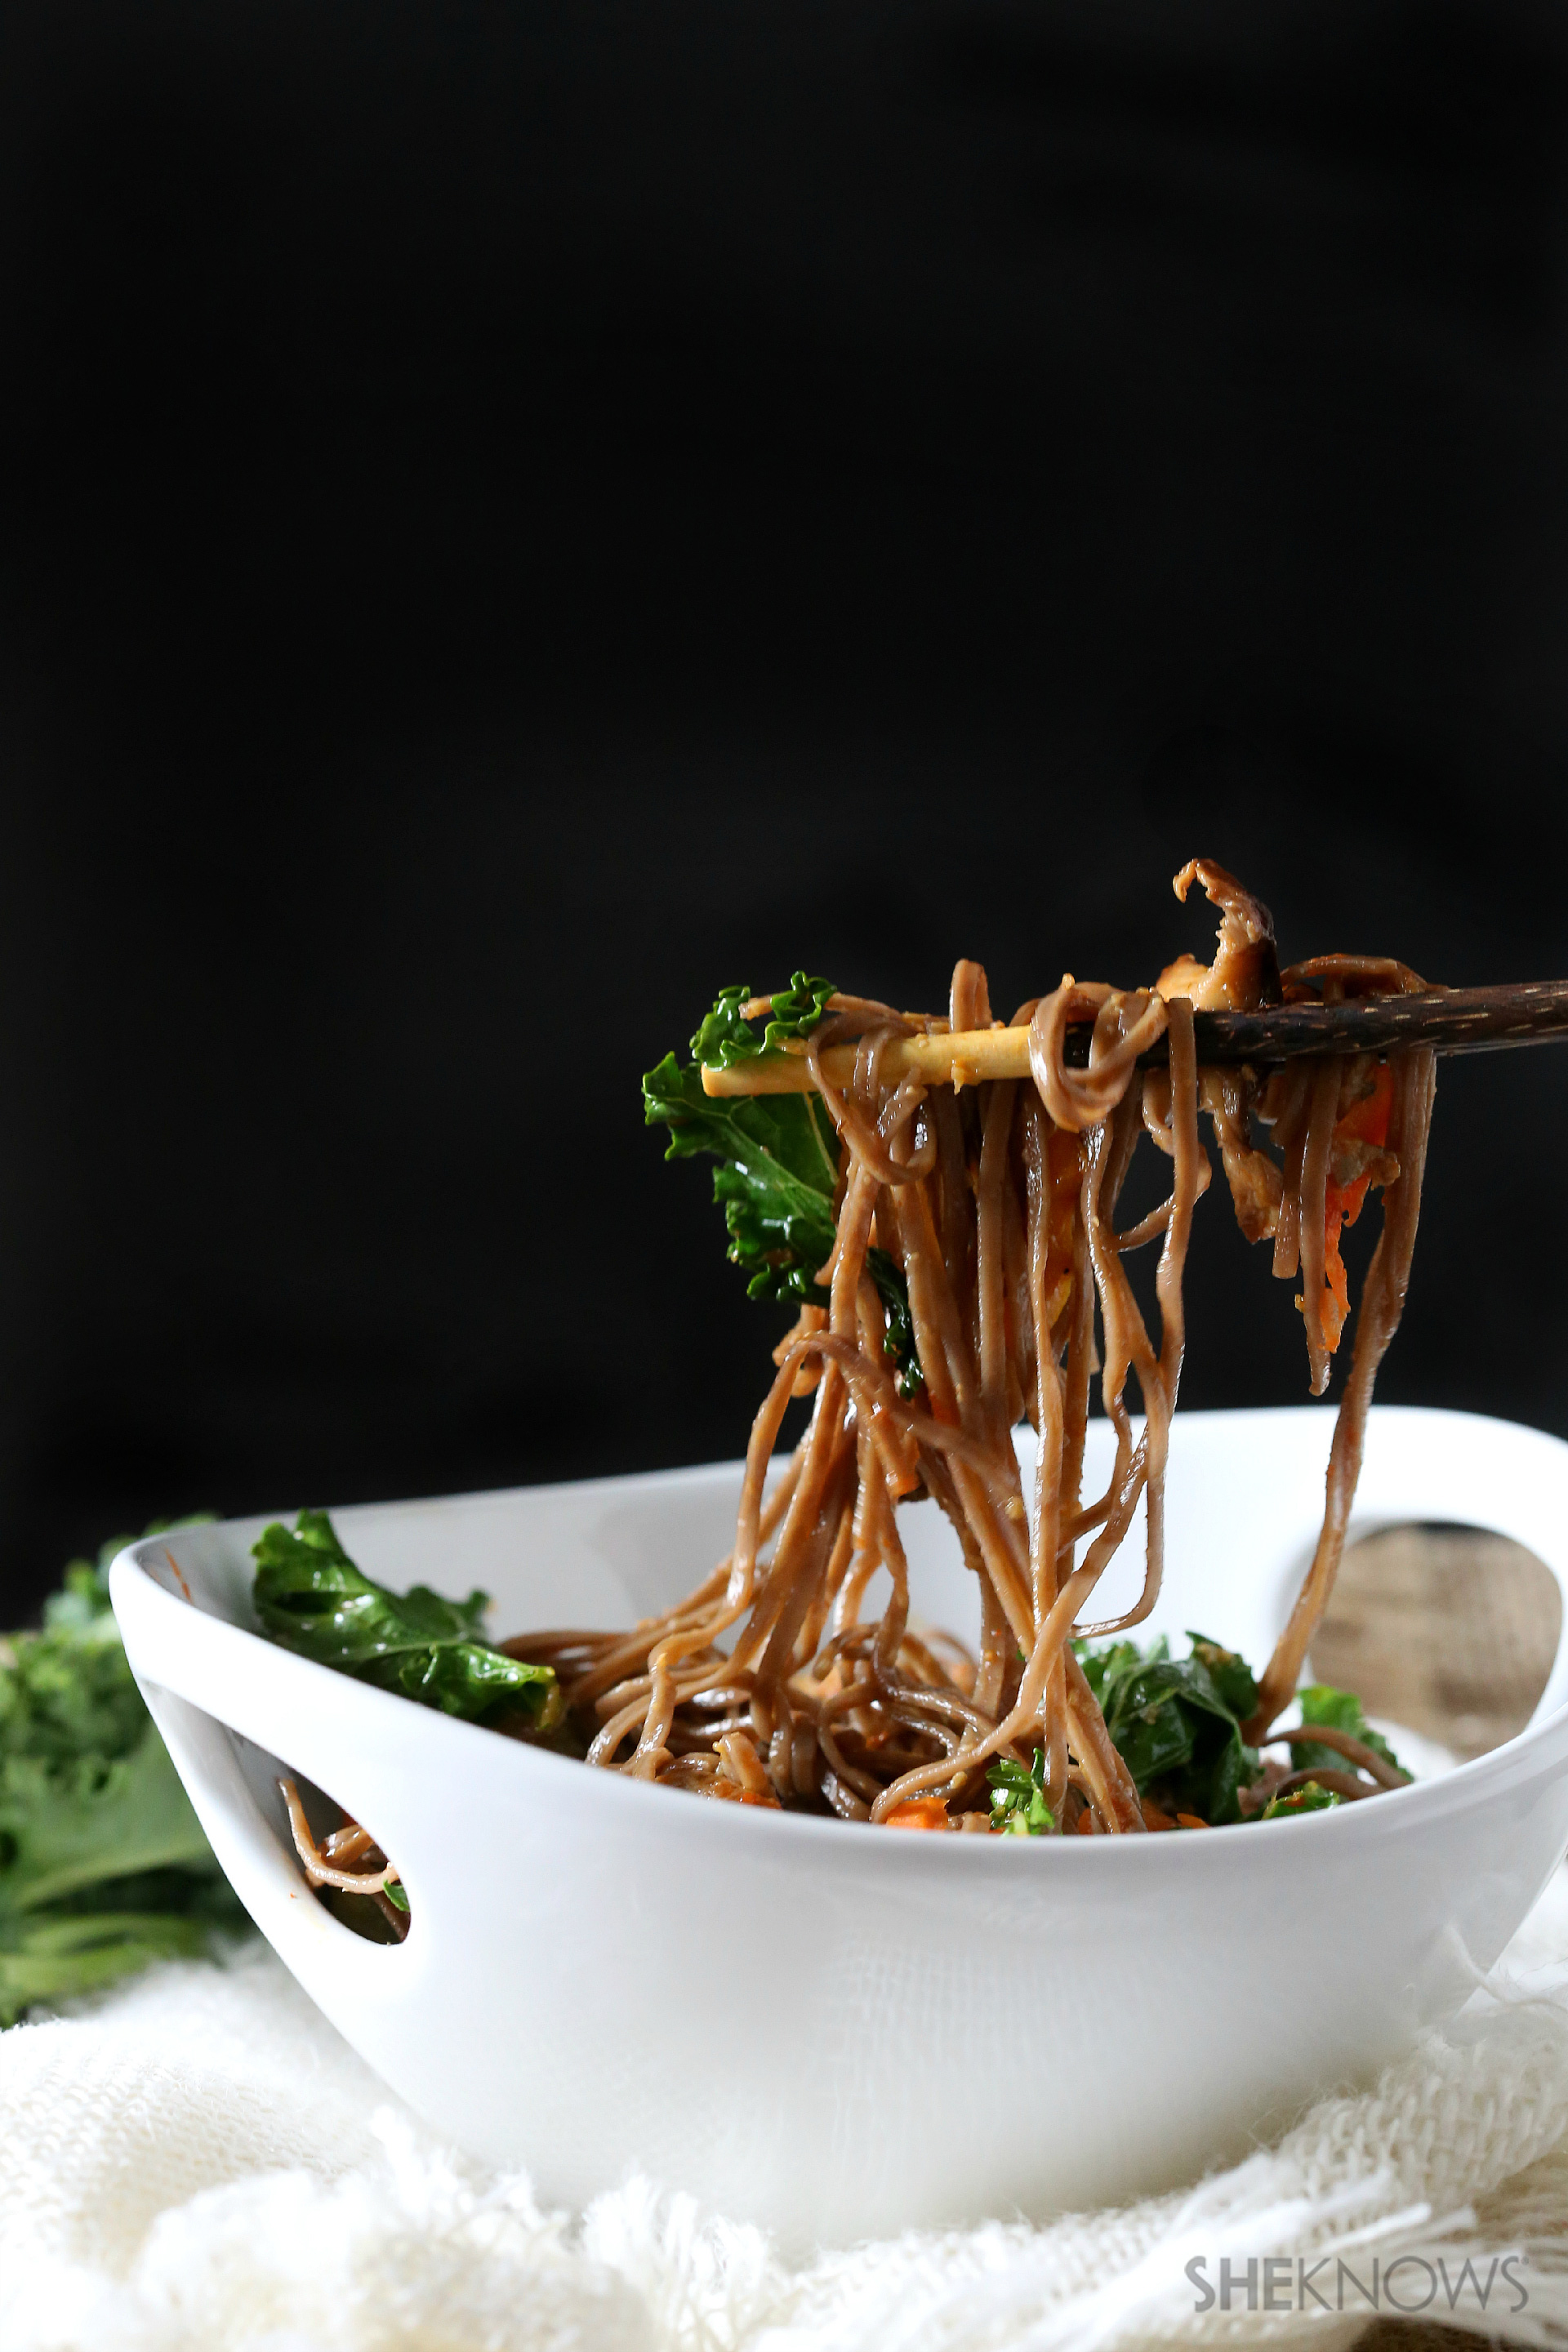 These soba noodles get added zing from Sriracha